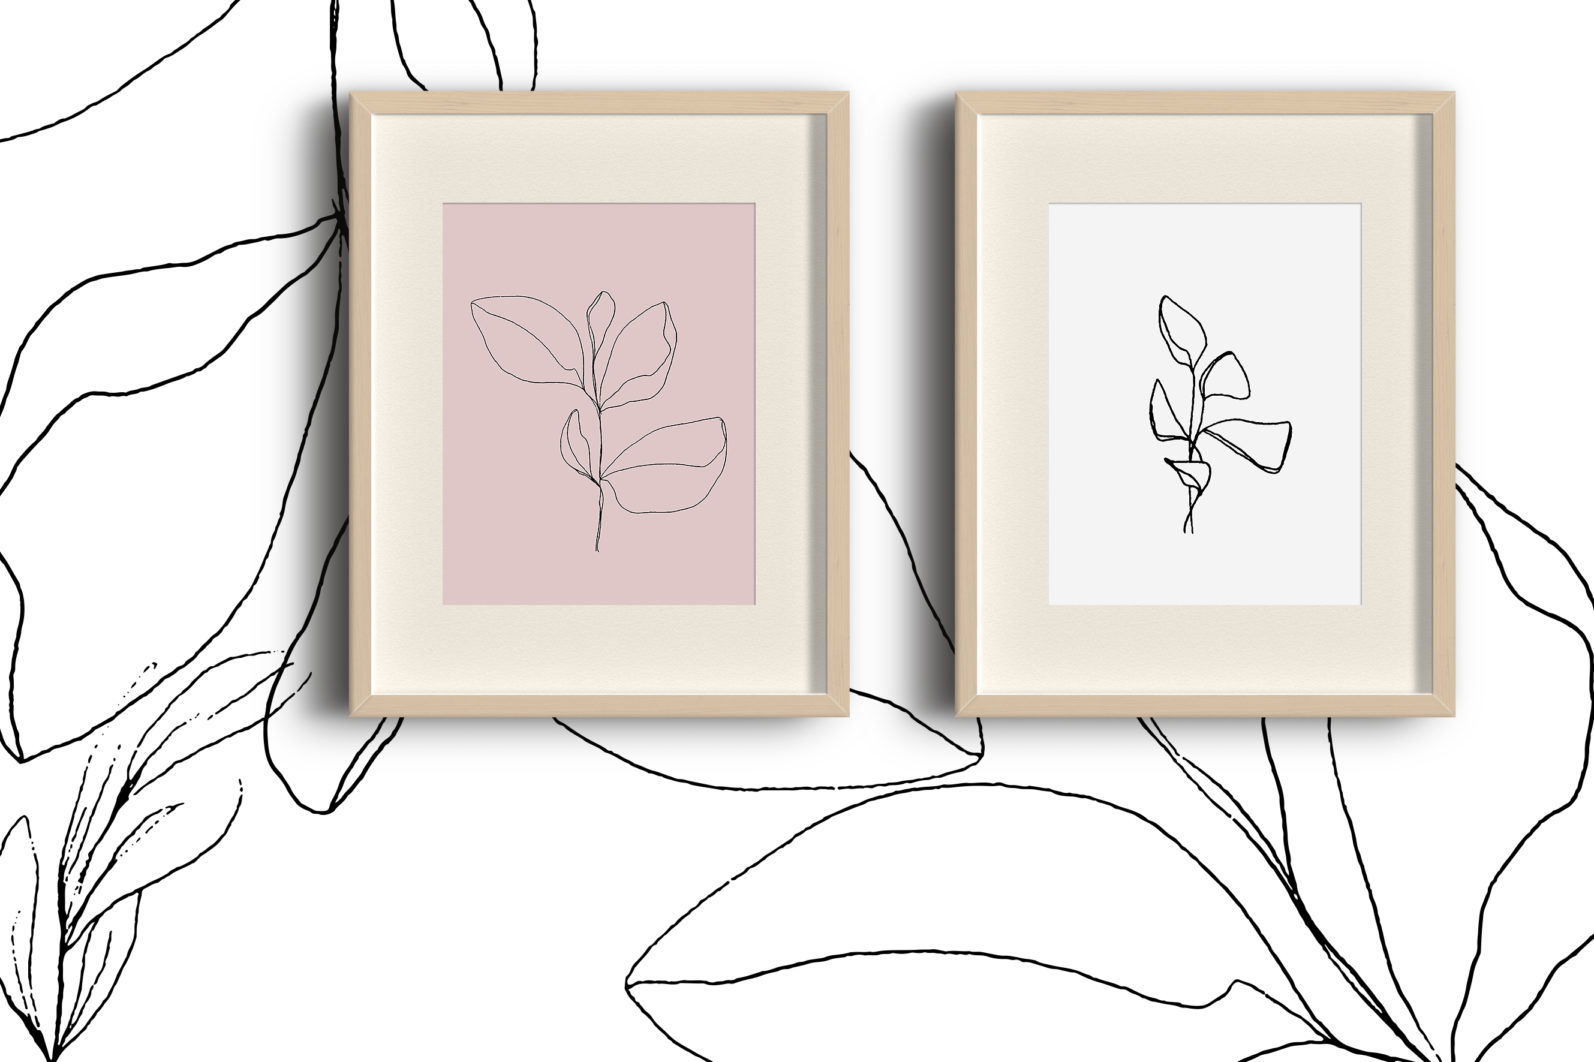 Floral pencil drawing one line art elements, Vector - etsy pencil preview11 -